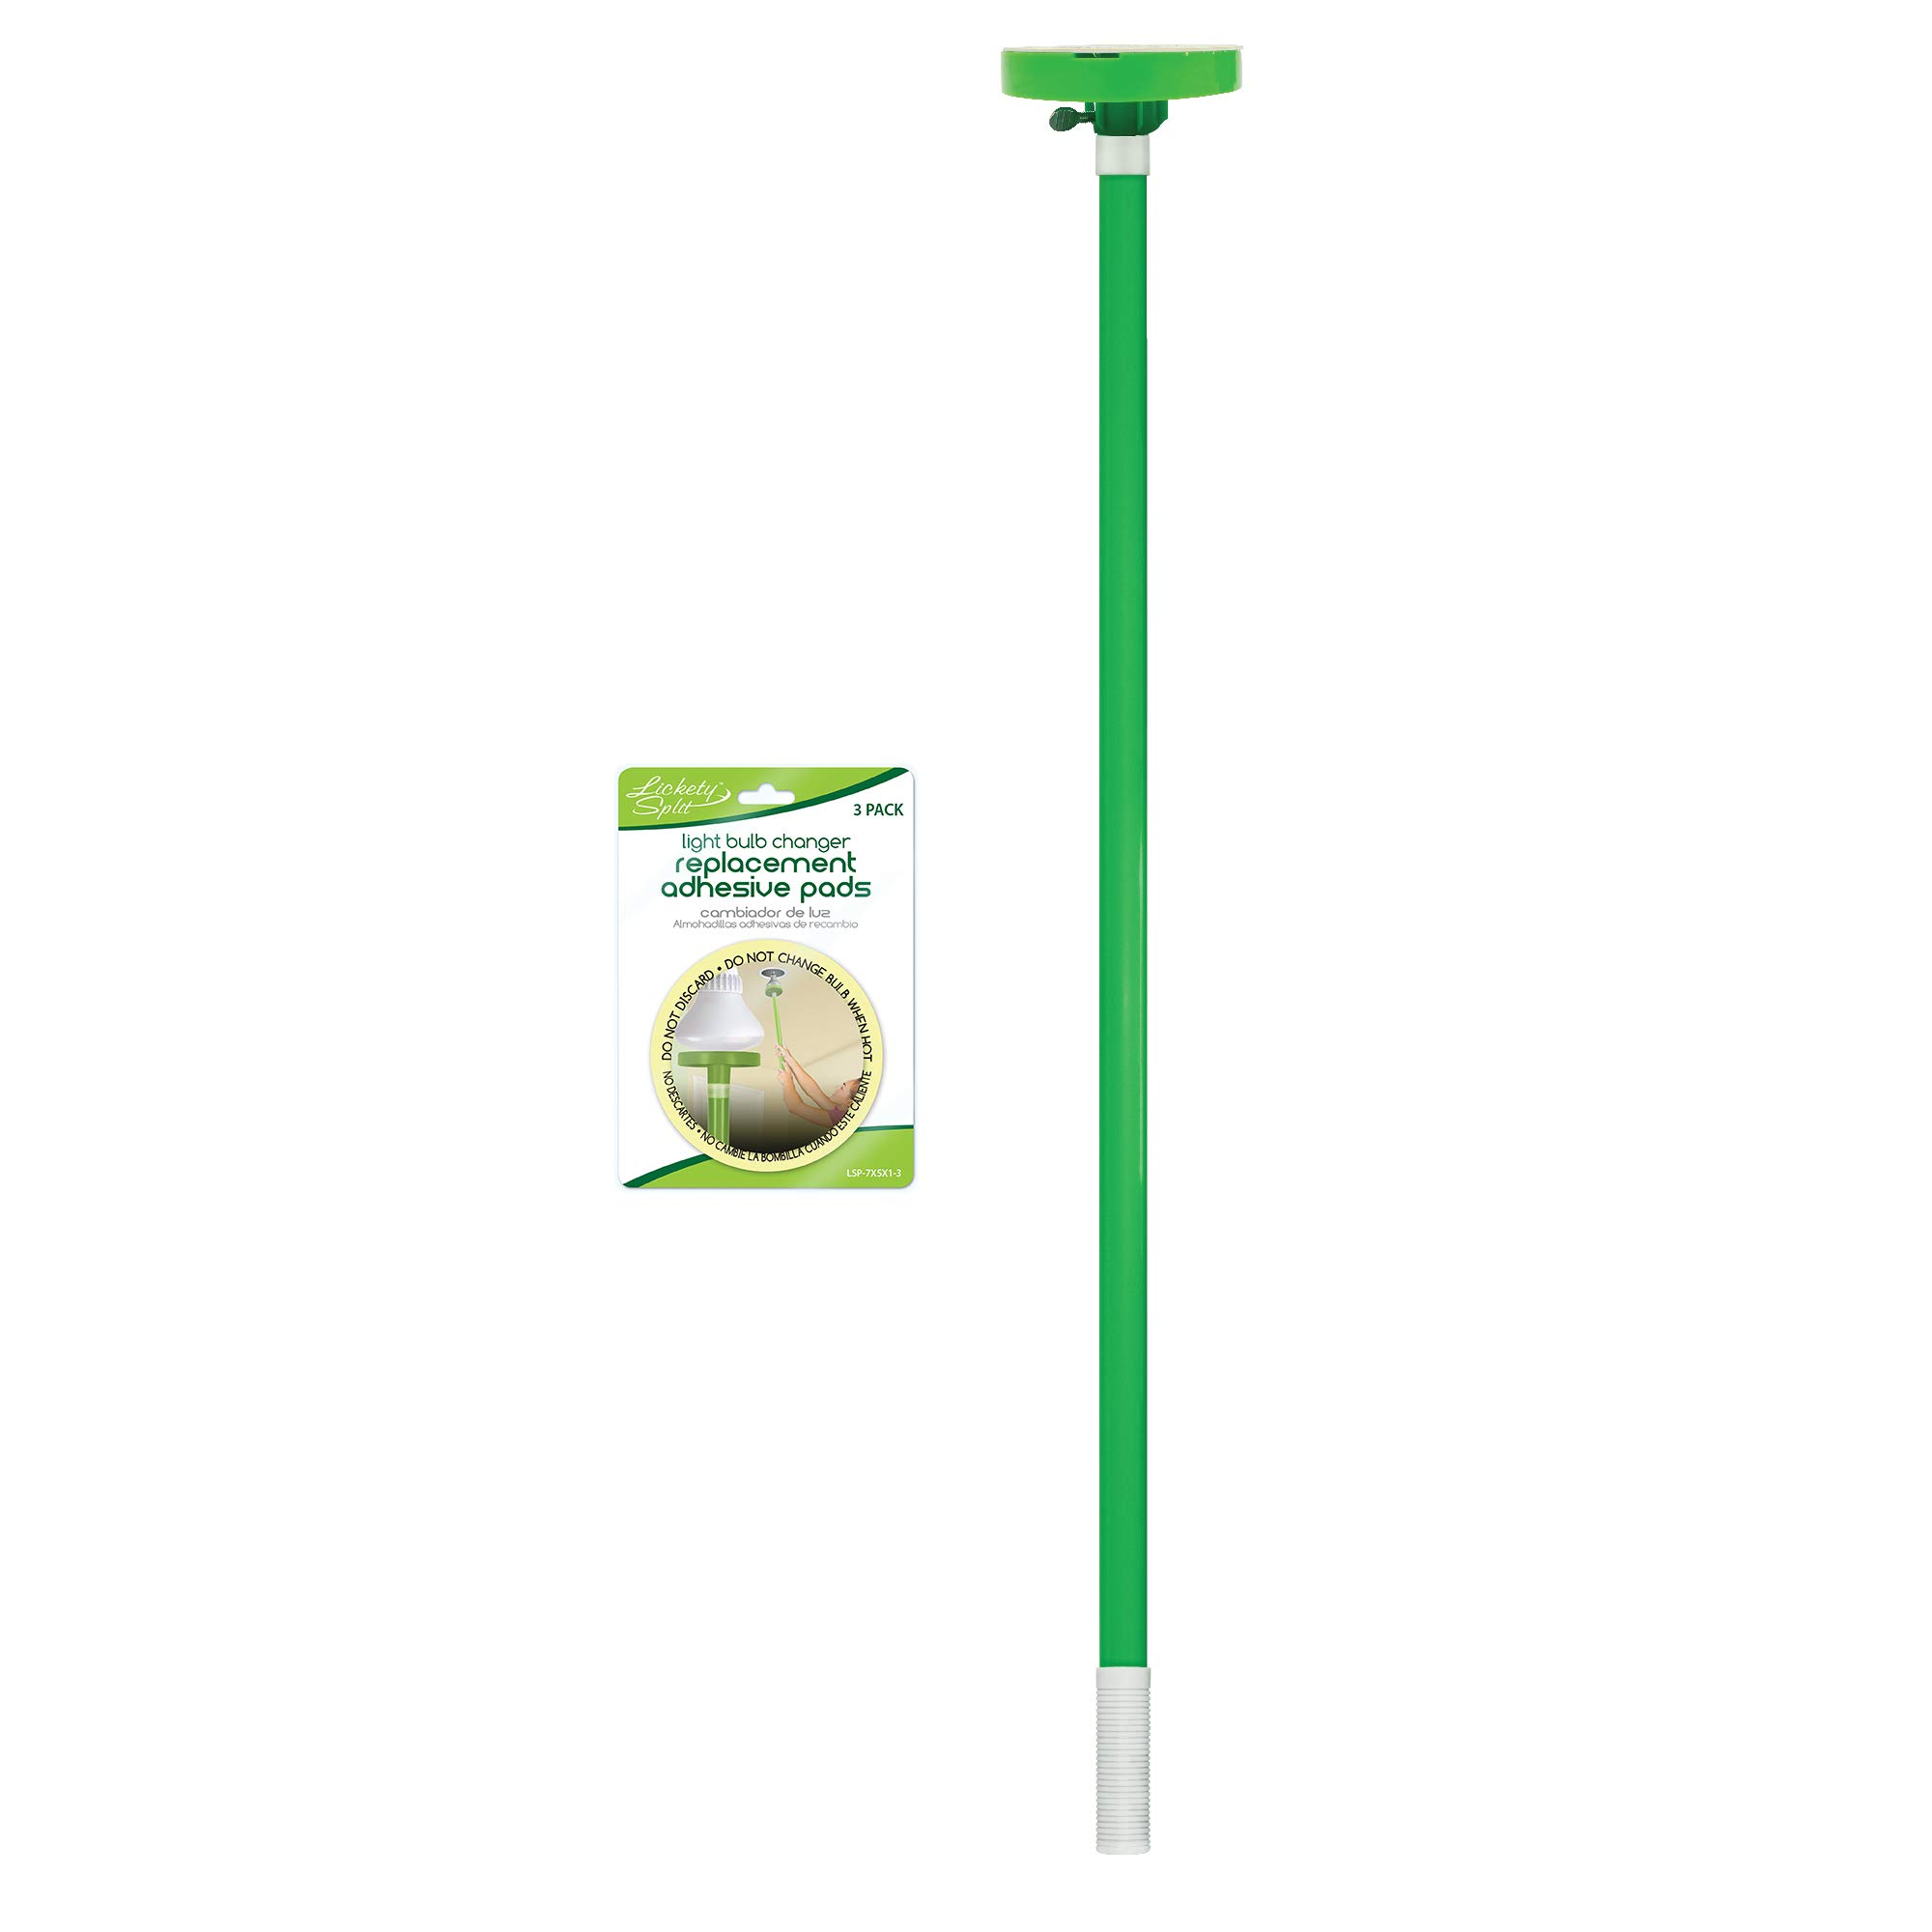 Lickety Split Light Bulb Changer (Topper with Pole)